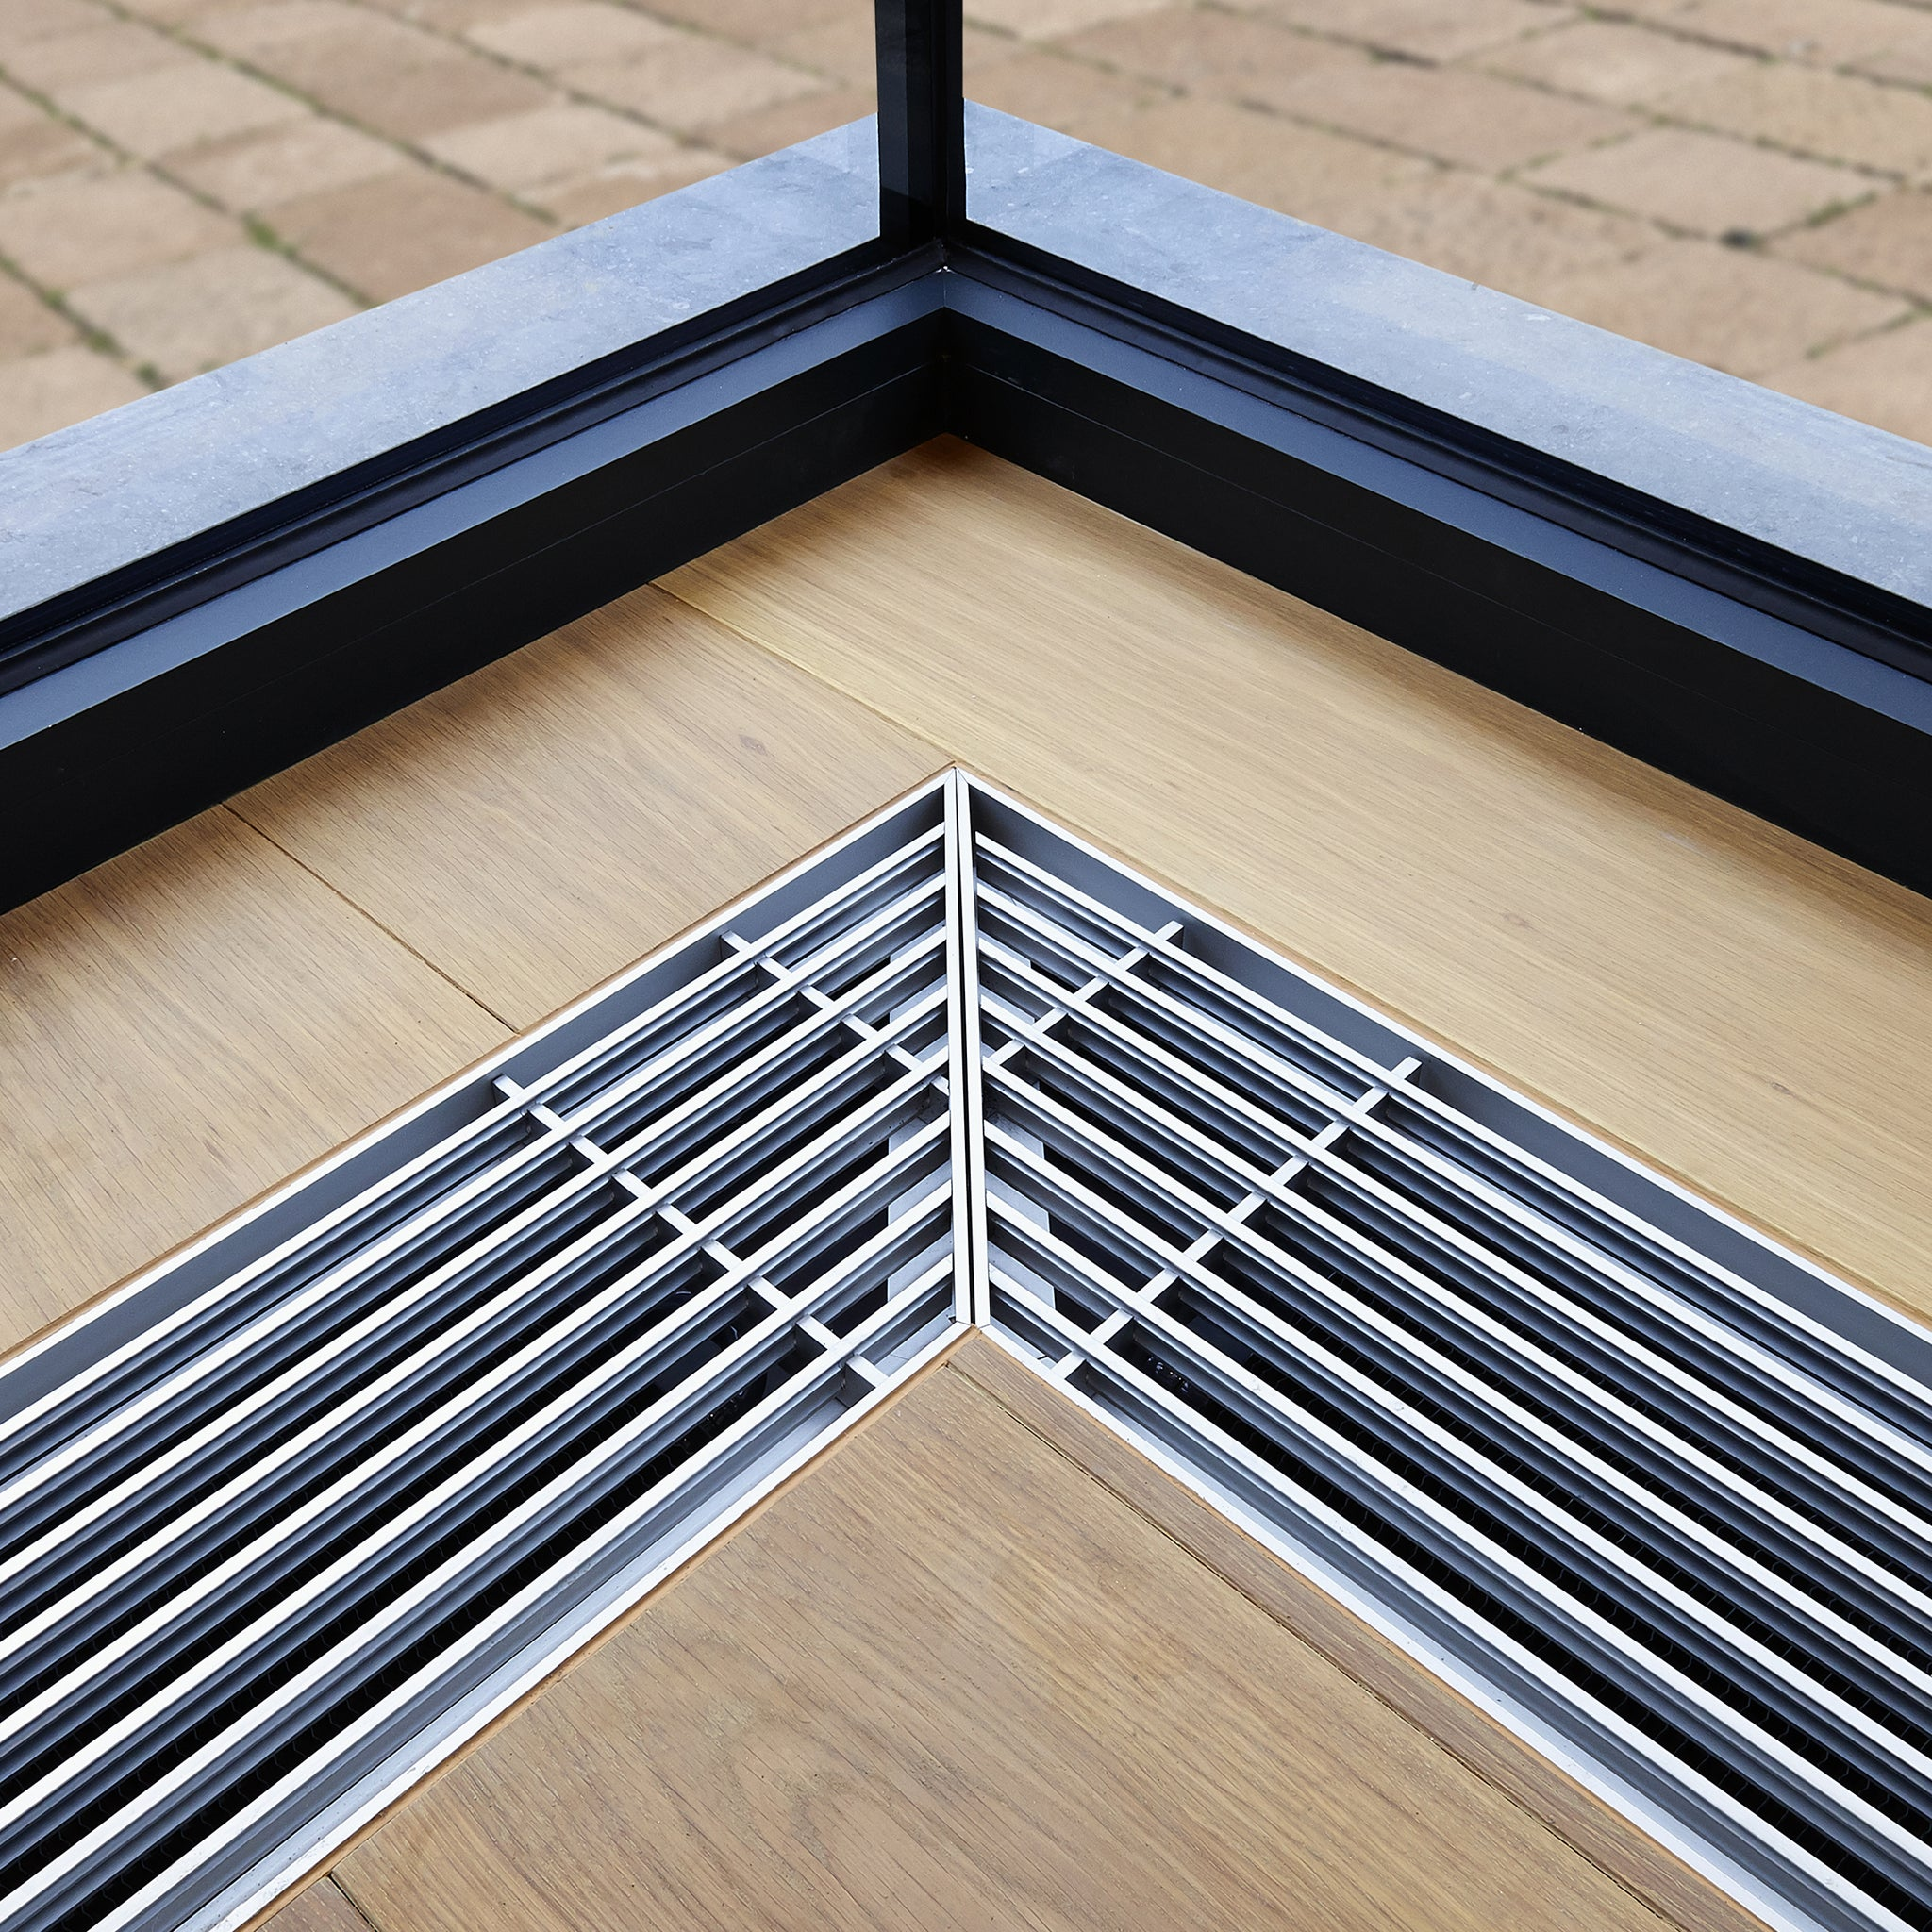 Linear Bar Grilles | ARCHITECTURAL GRILLE